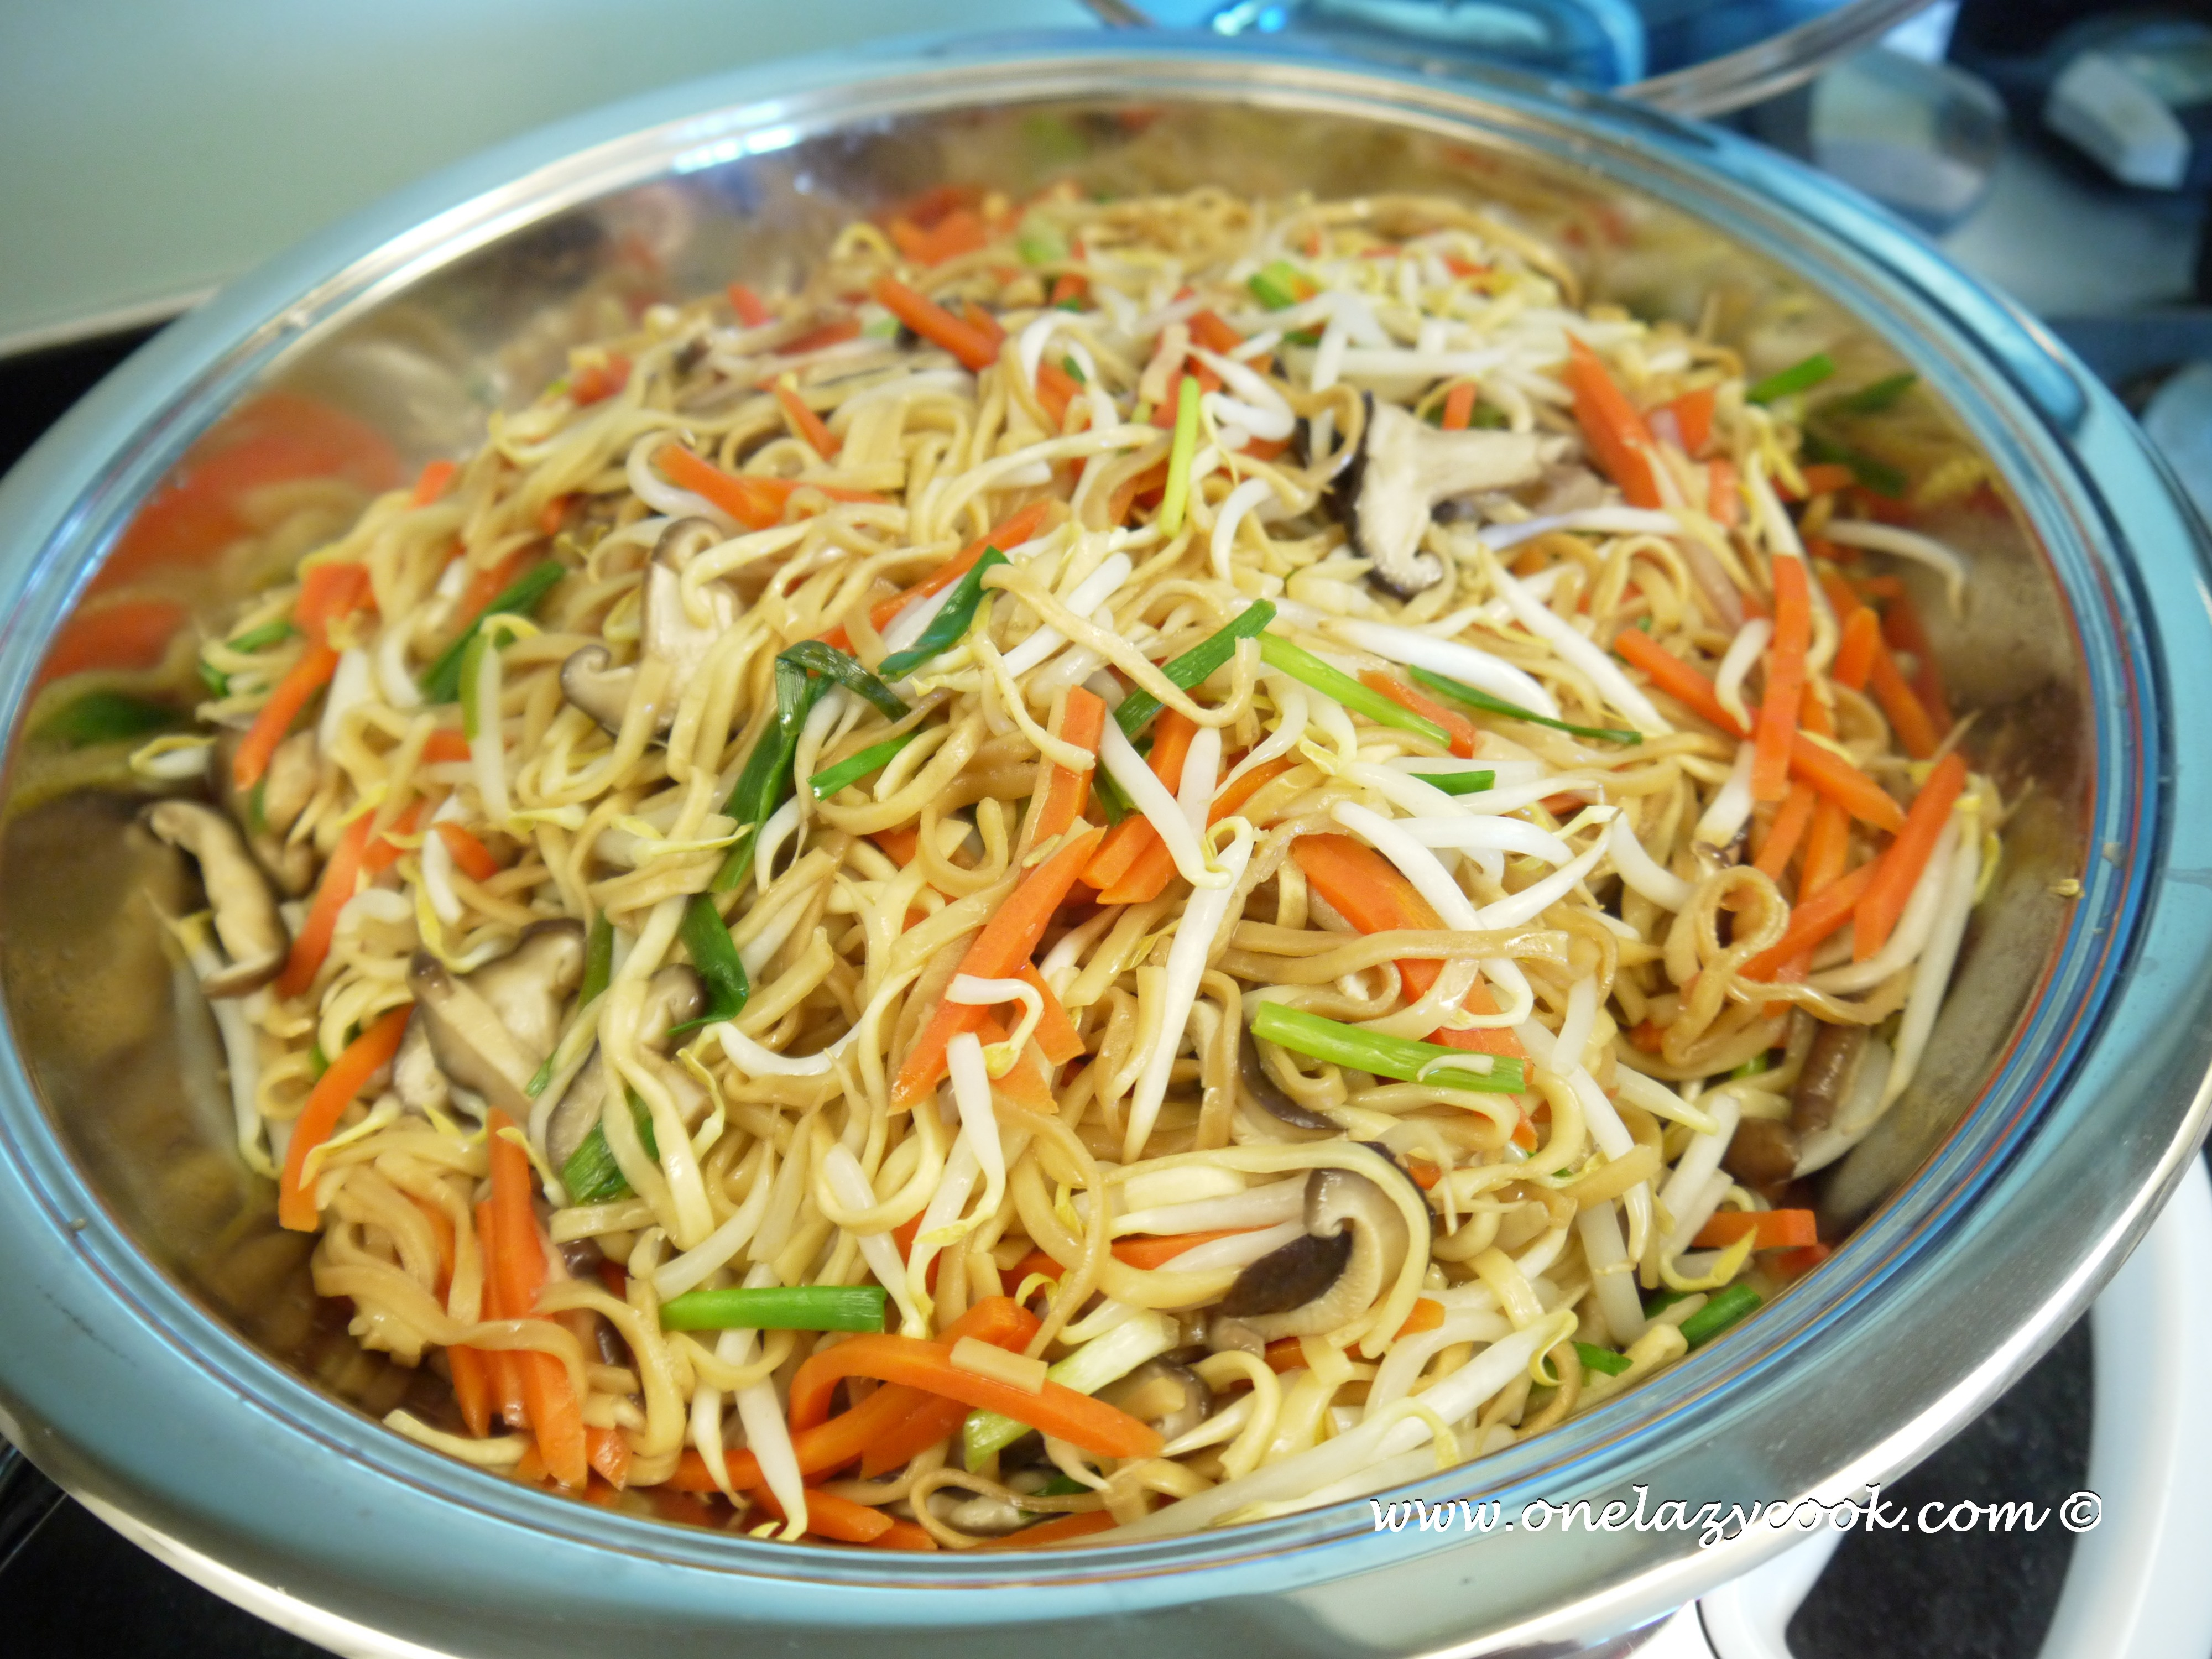 Stir Fried Vegetarian Noodles Without Additional Fats One Lazy Cook